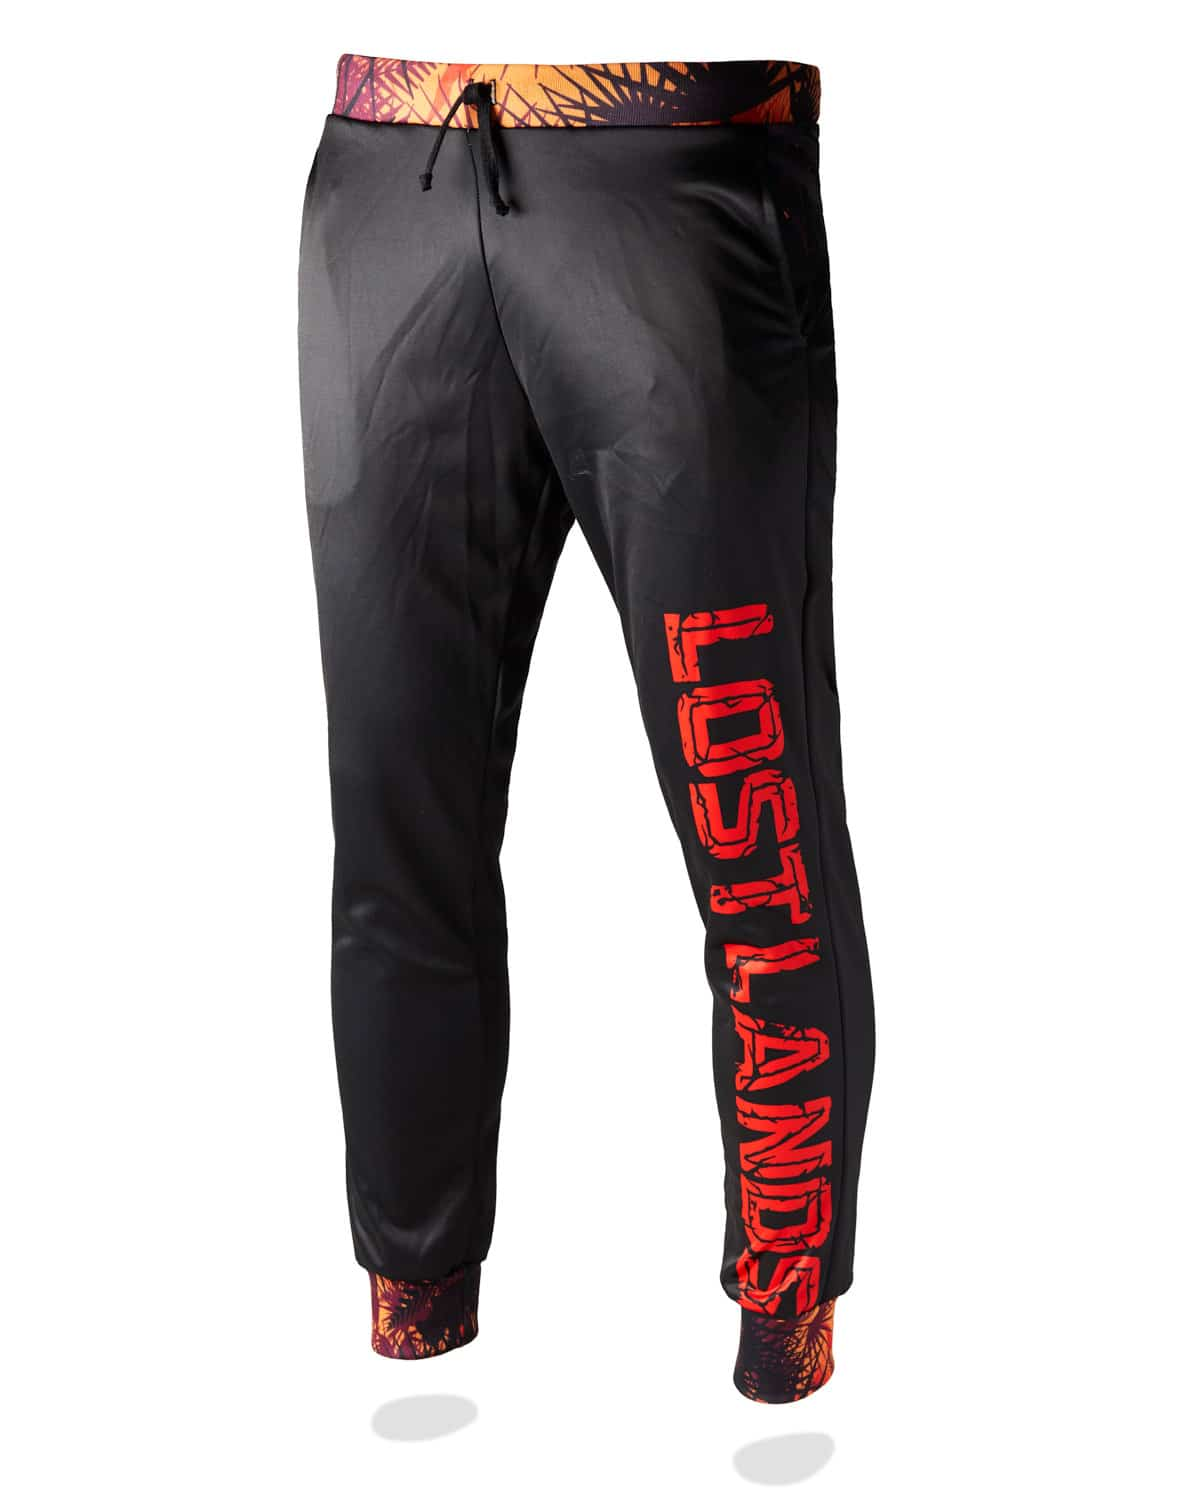 Lost Lands 'Foliage' Jogger Sweatpants (Black/Orange)